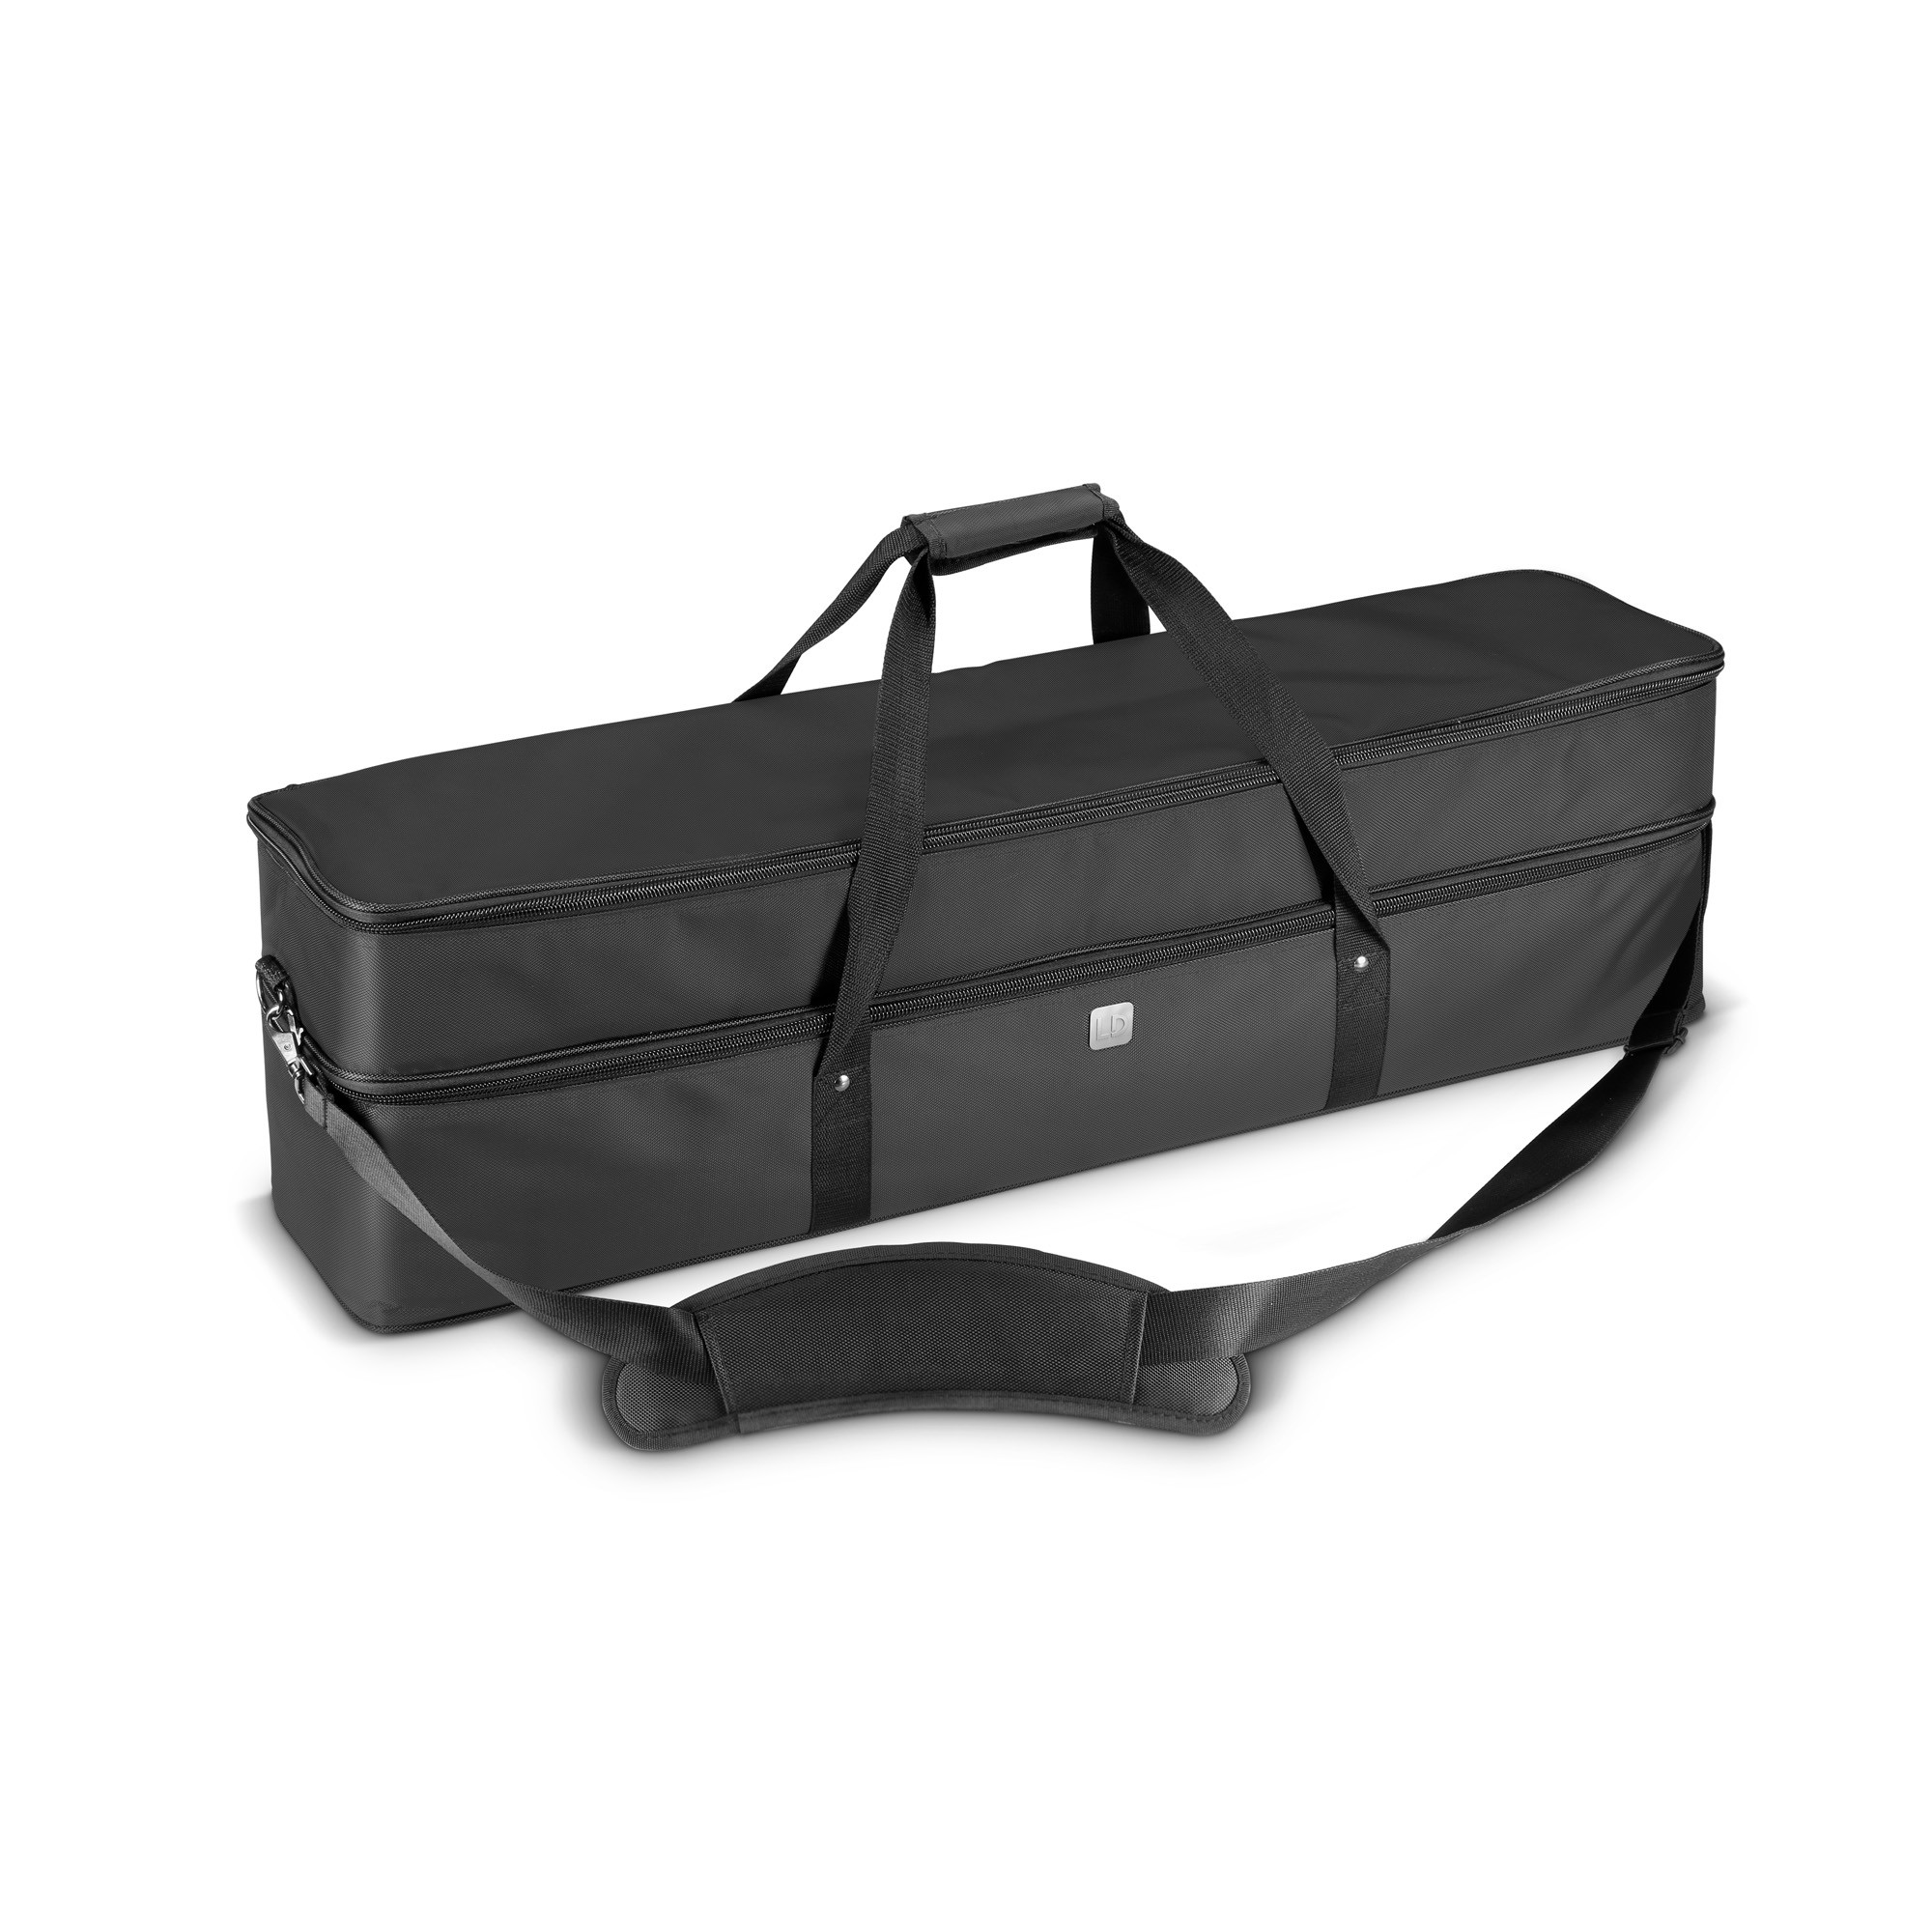 CURV 500 TS SAT BAG Padded Carry Bag for CURV 500 TS Duplex Satellites